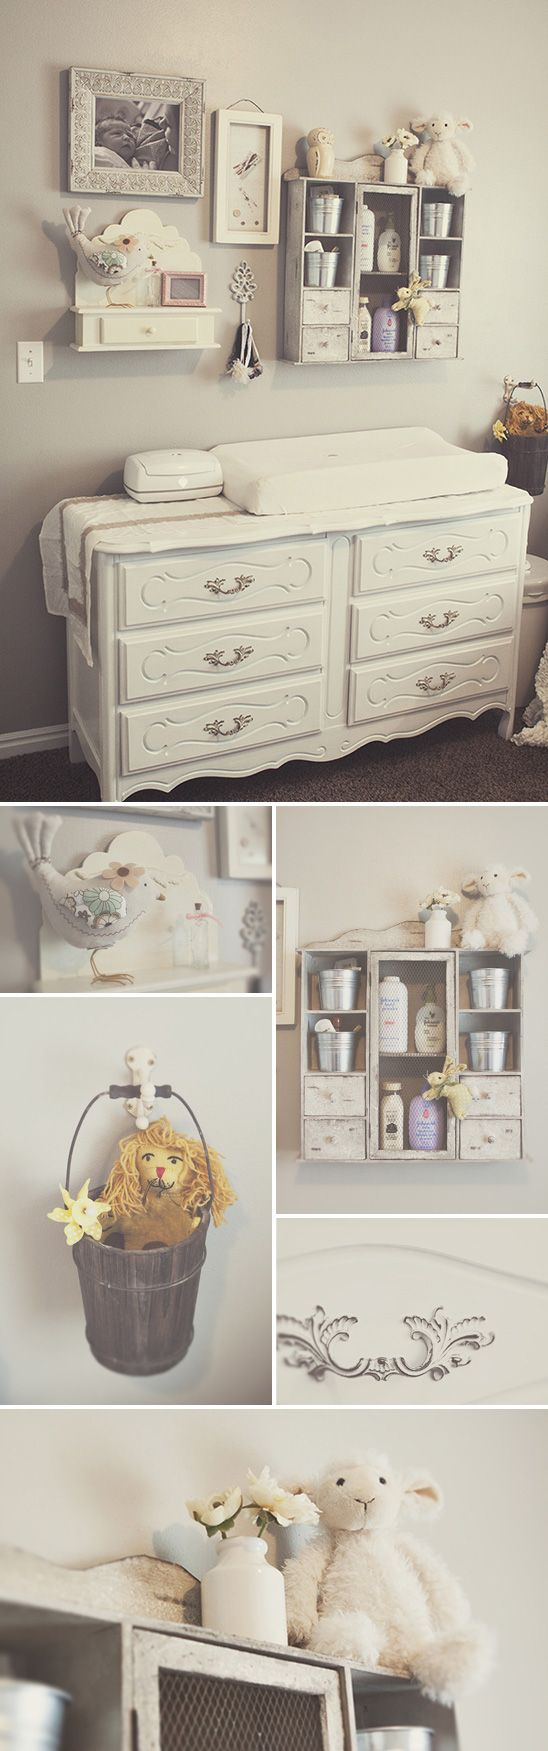 I love the idea of shelving on the wall over the dresser to hold